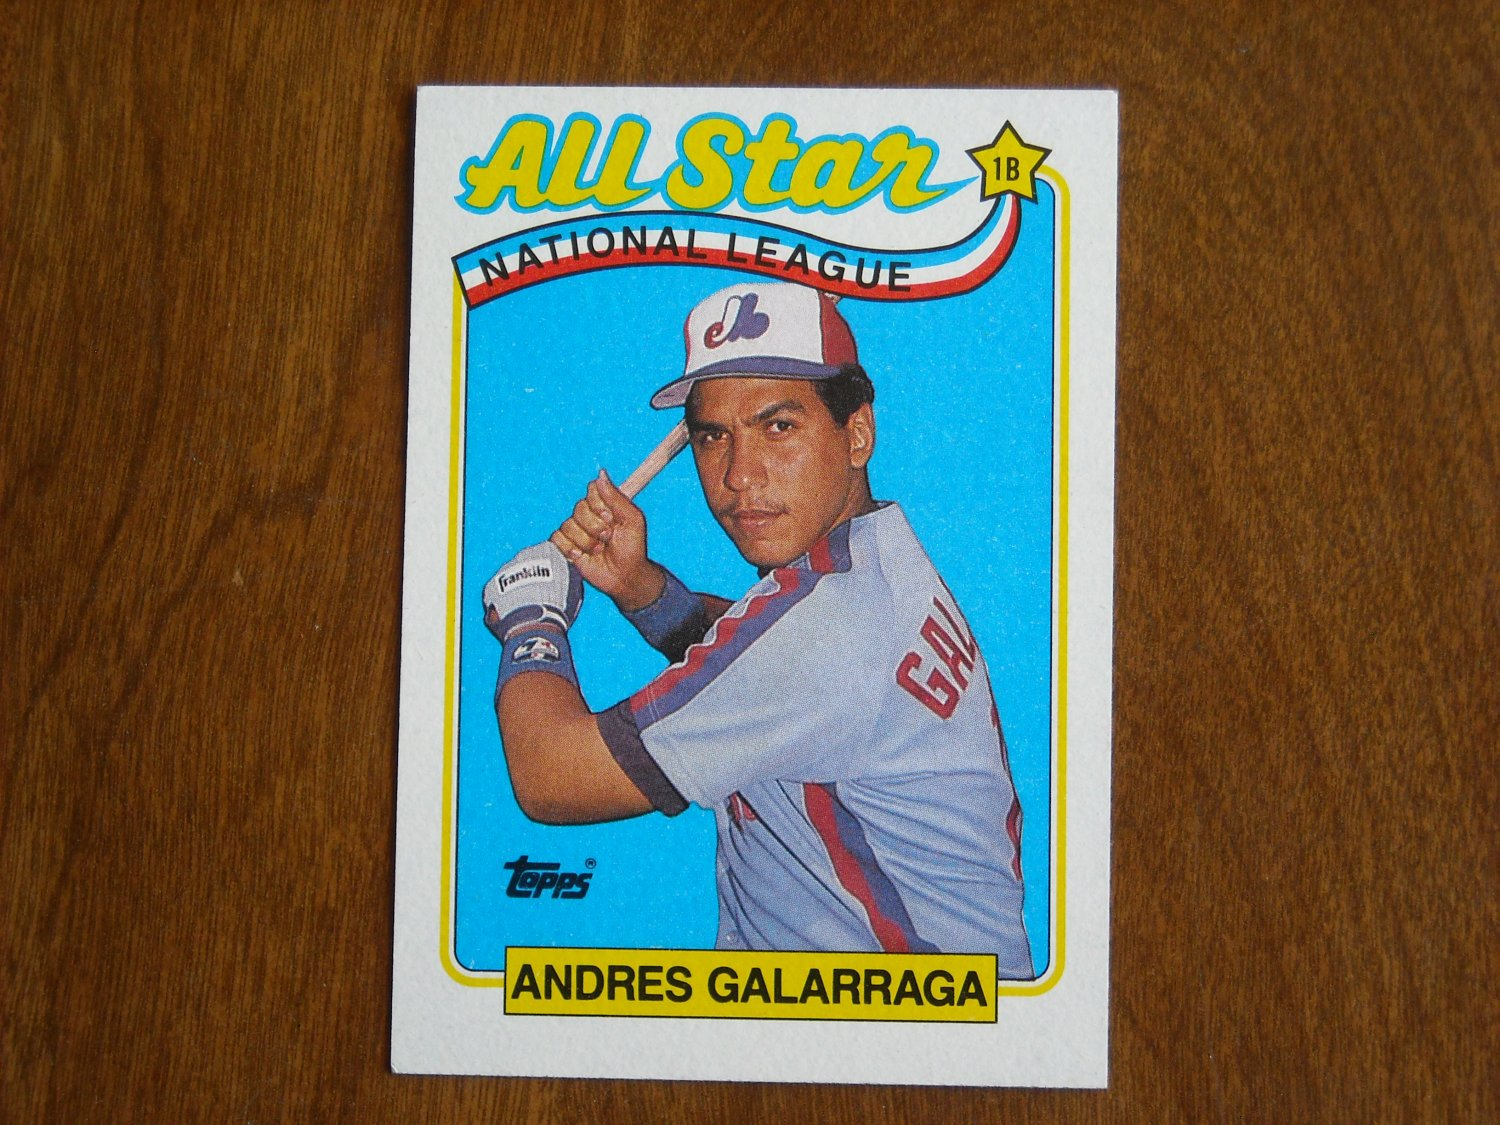 Andres Galarraga All Star National League Montreal Expos 386 1989